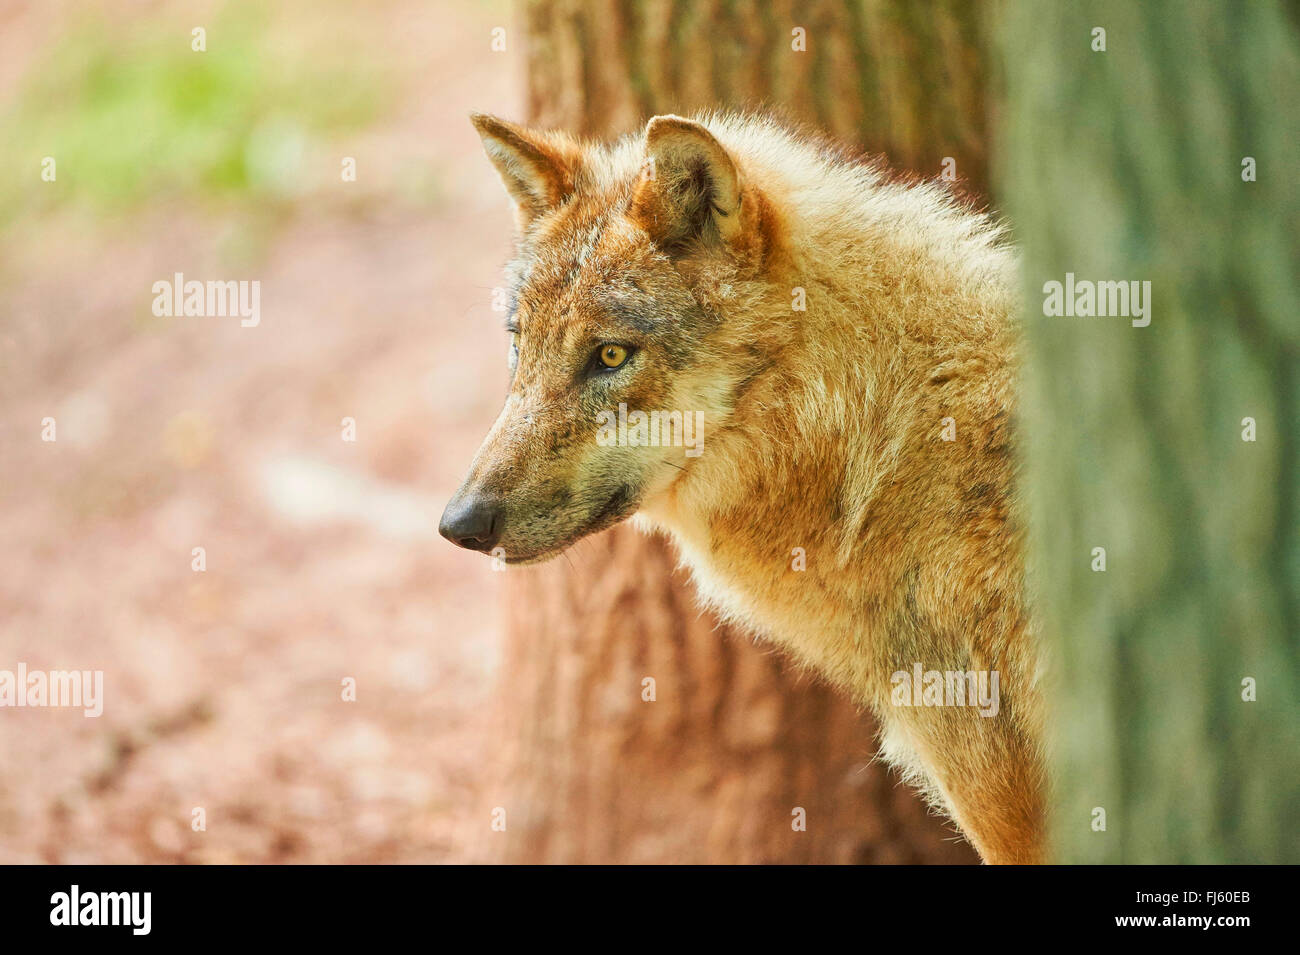 European gray wolf (Canis lupus lupus), portrait of a wolf between two stems, Germany, Bavaria - Stock Image